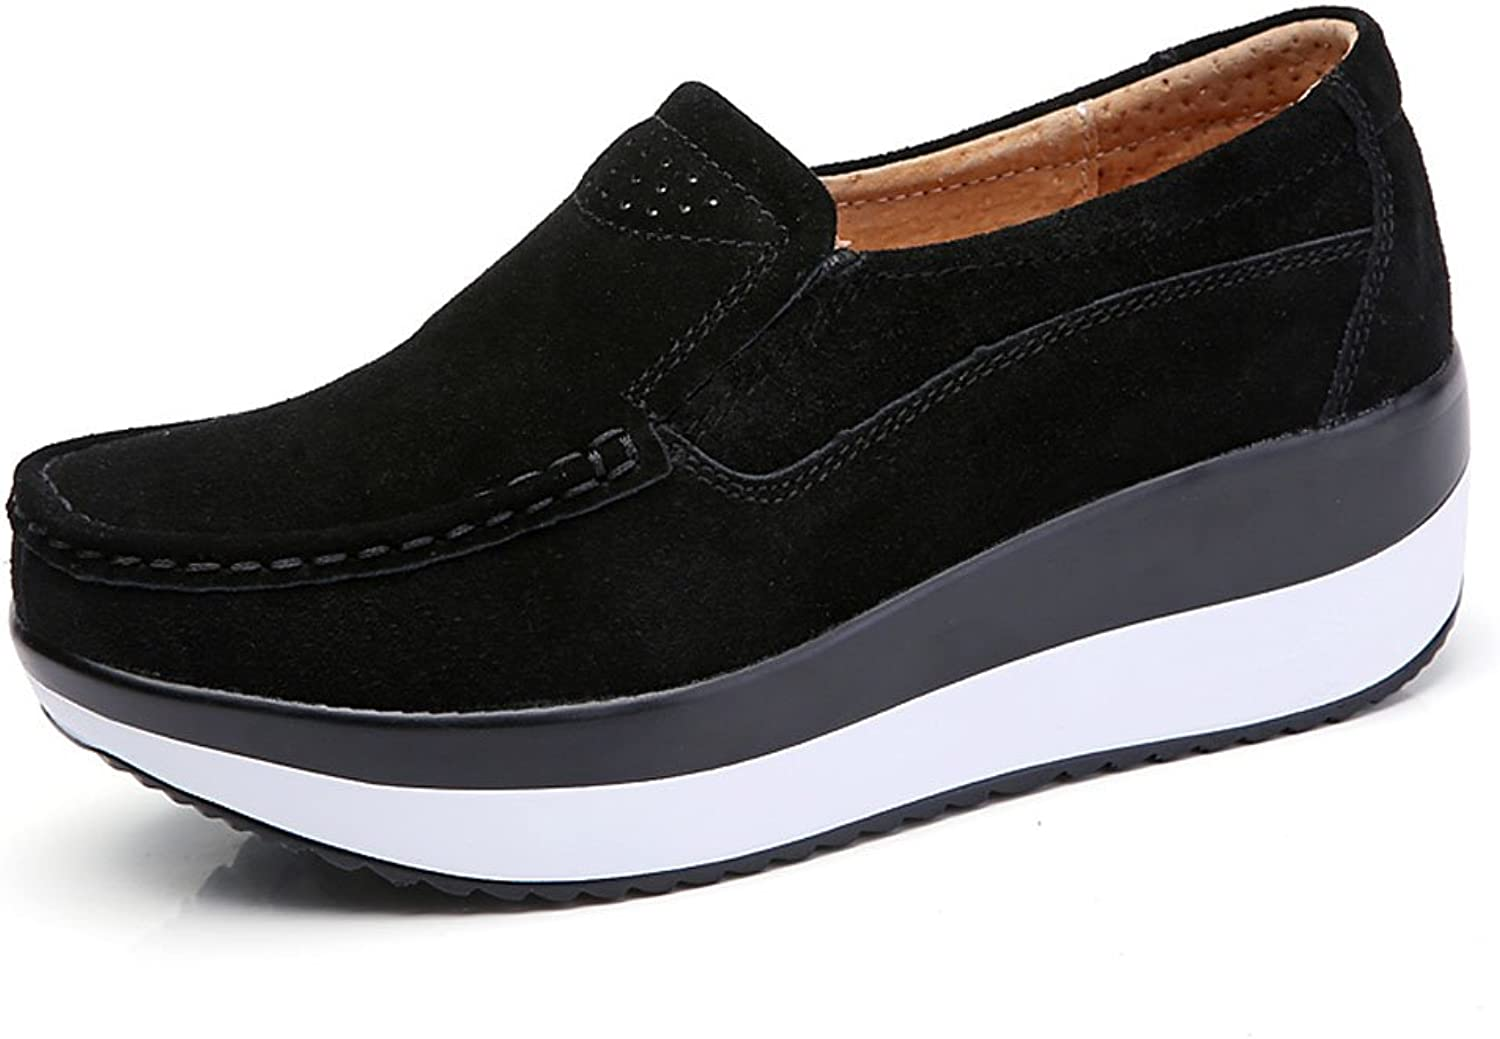 TSIODFO Slip On shoes for Autumn Platform Loafers for Women Suede Cow Leather Comforable Fashion Black Sneakers Size 6 (3213black37)